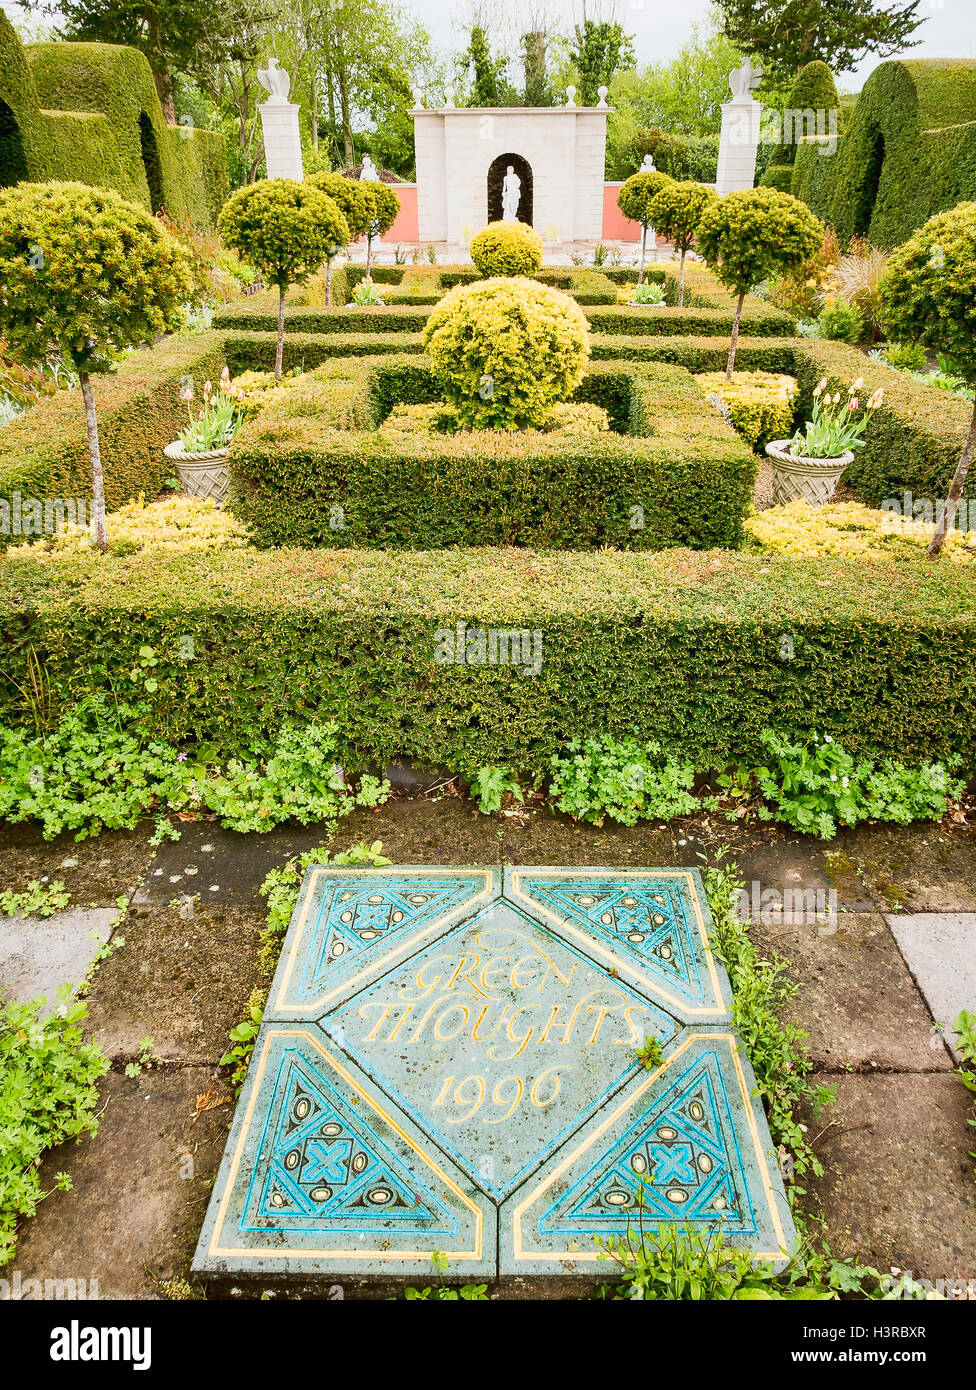 Ornamental dedication Green Thoughts in Laskett garden Herefordshire UK - Stock Image